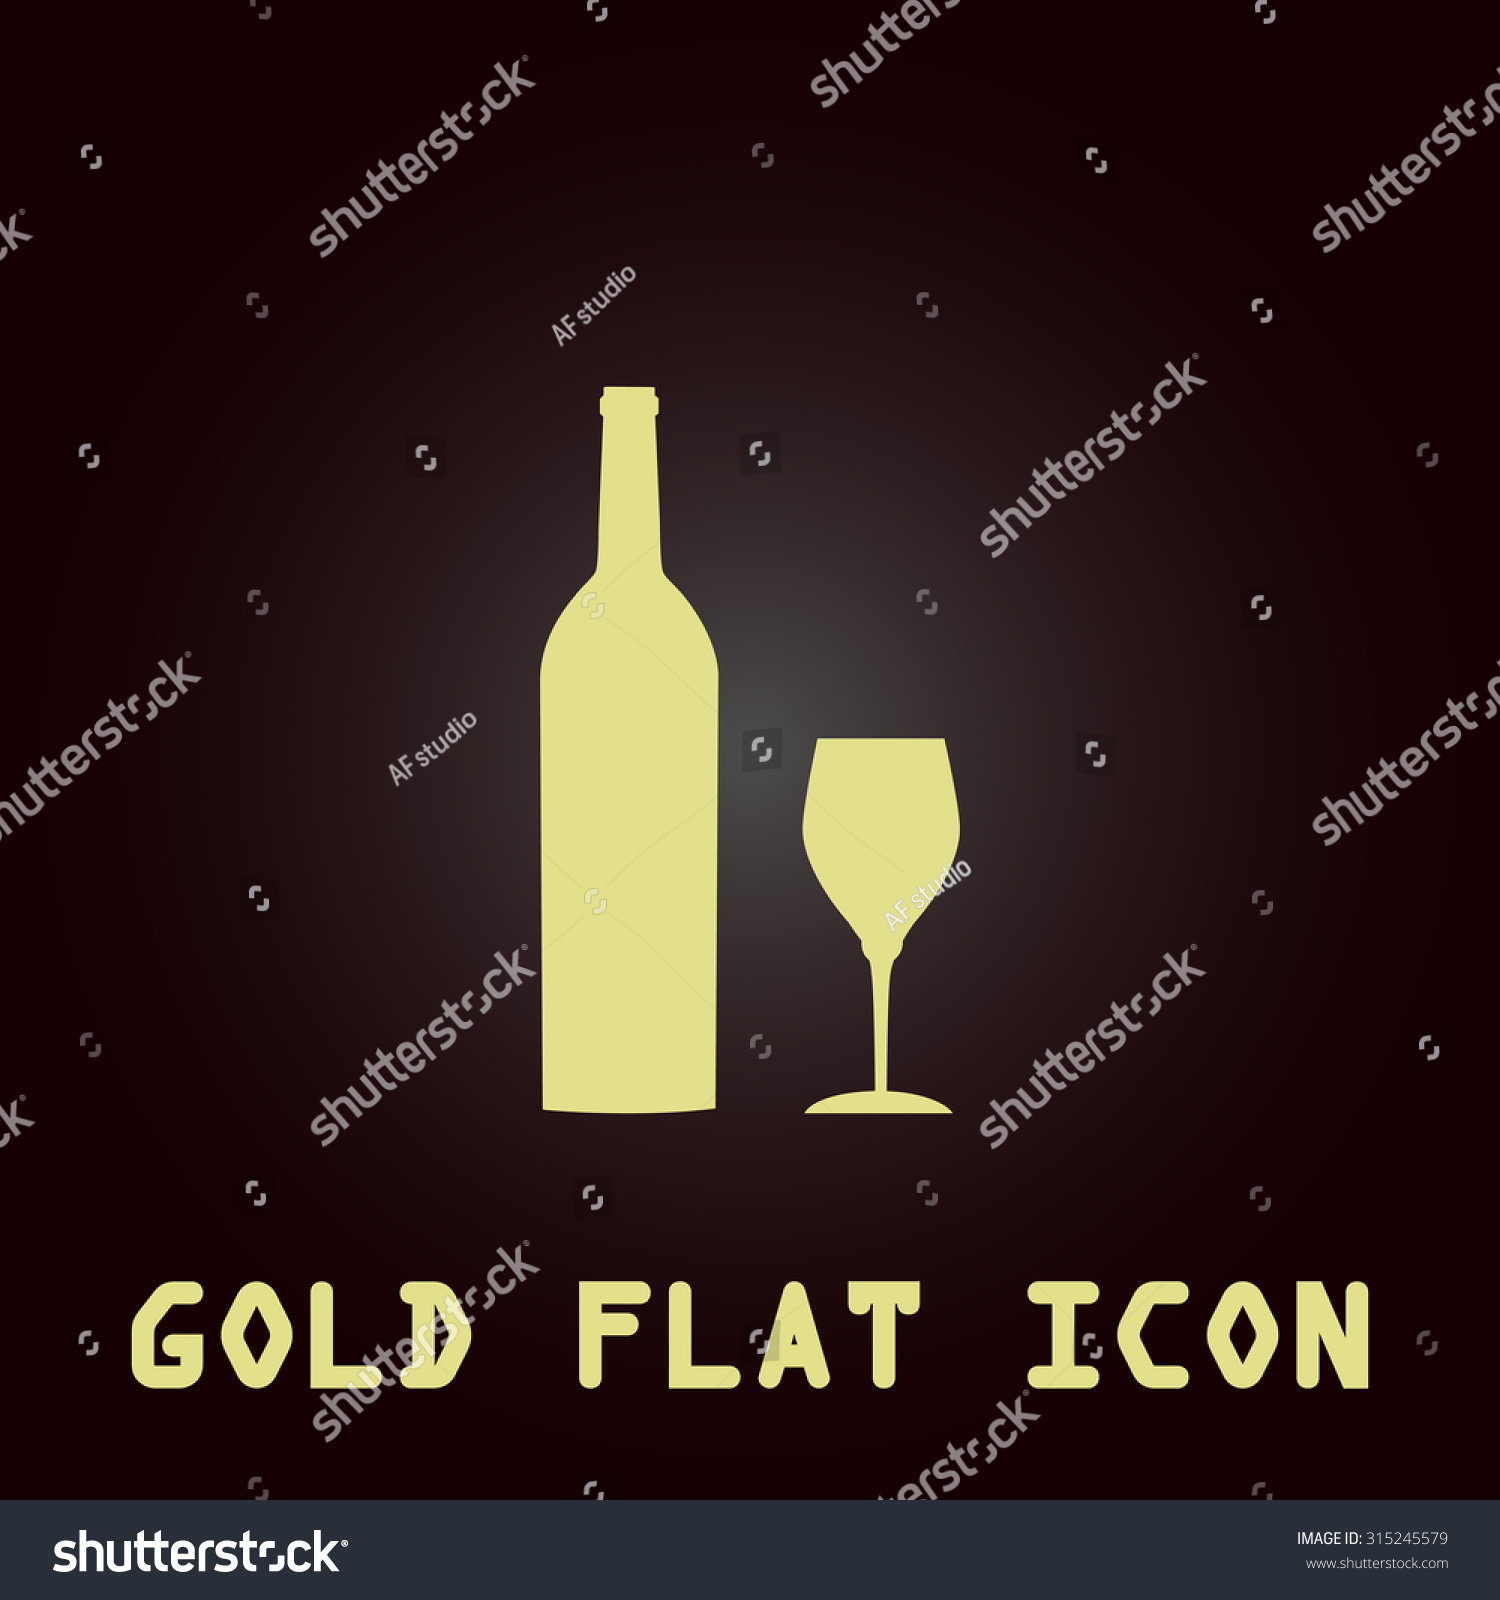 Bottle wine glass gold flat icon stock illustration 315245579 bottle of wine and glass gold flat icon symbol for web and mobile applications biocorpaavc Gallery